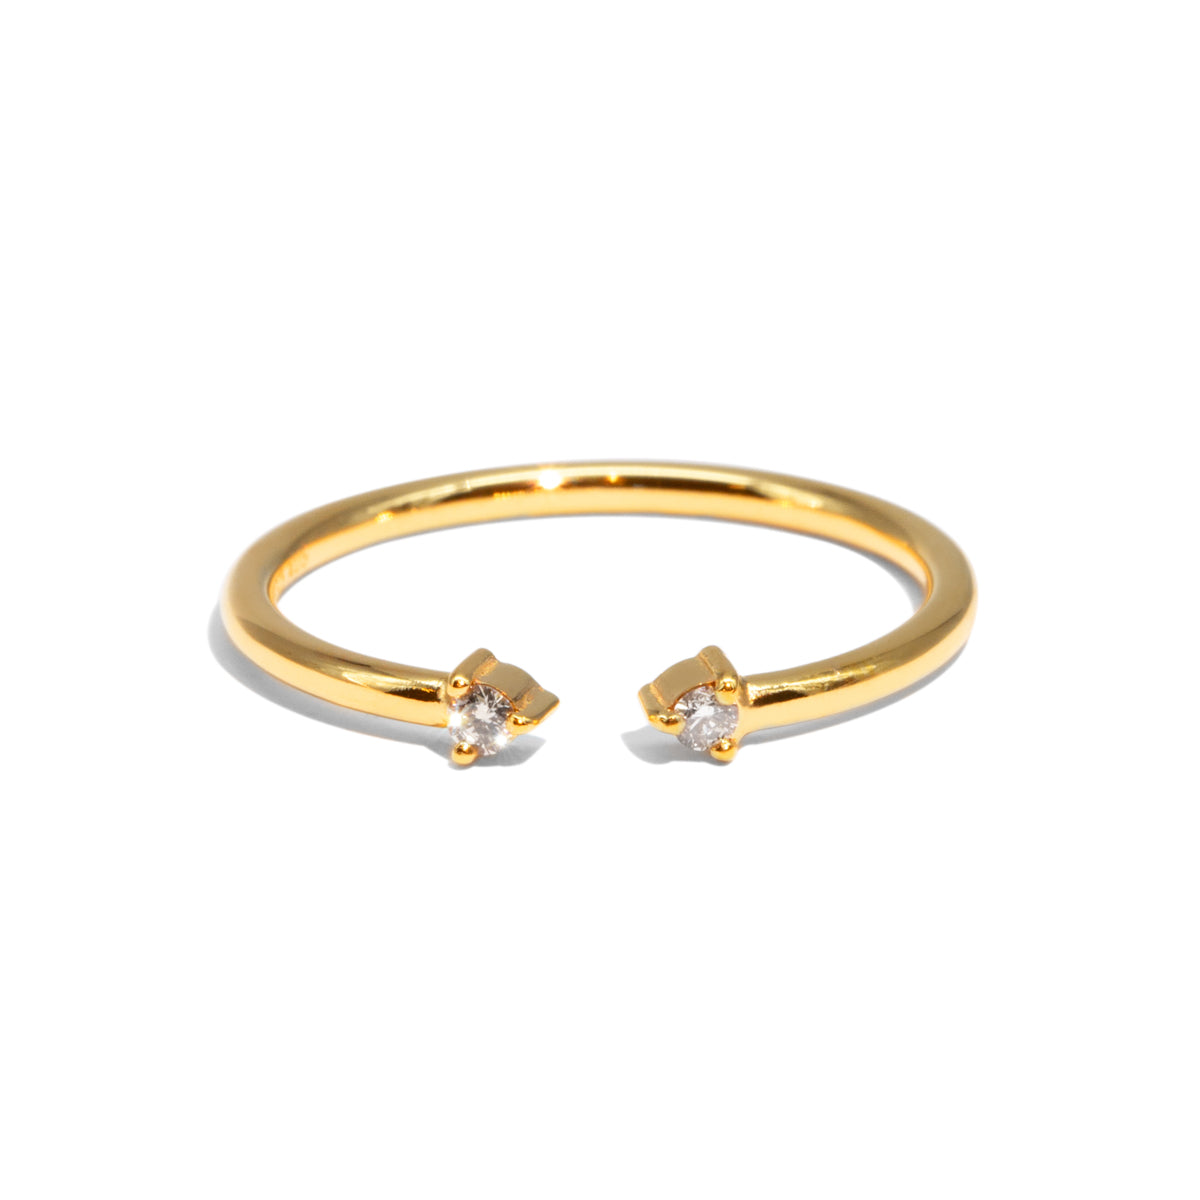 The Gold Diamond Duo Ring